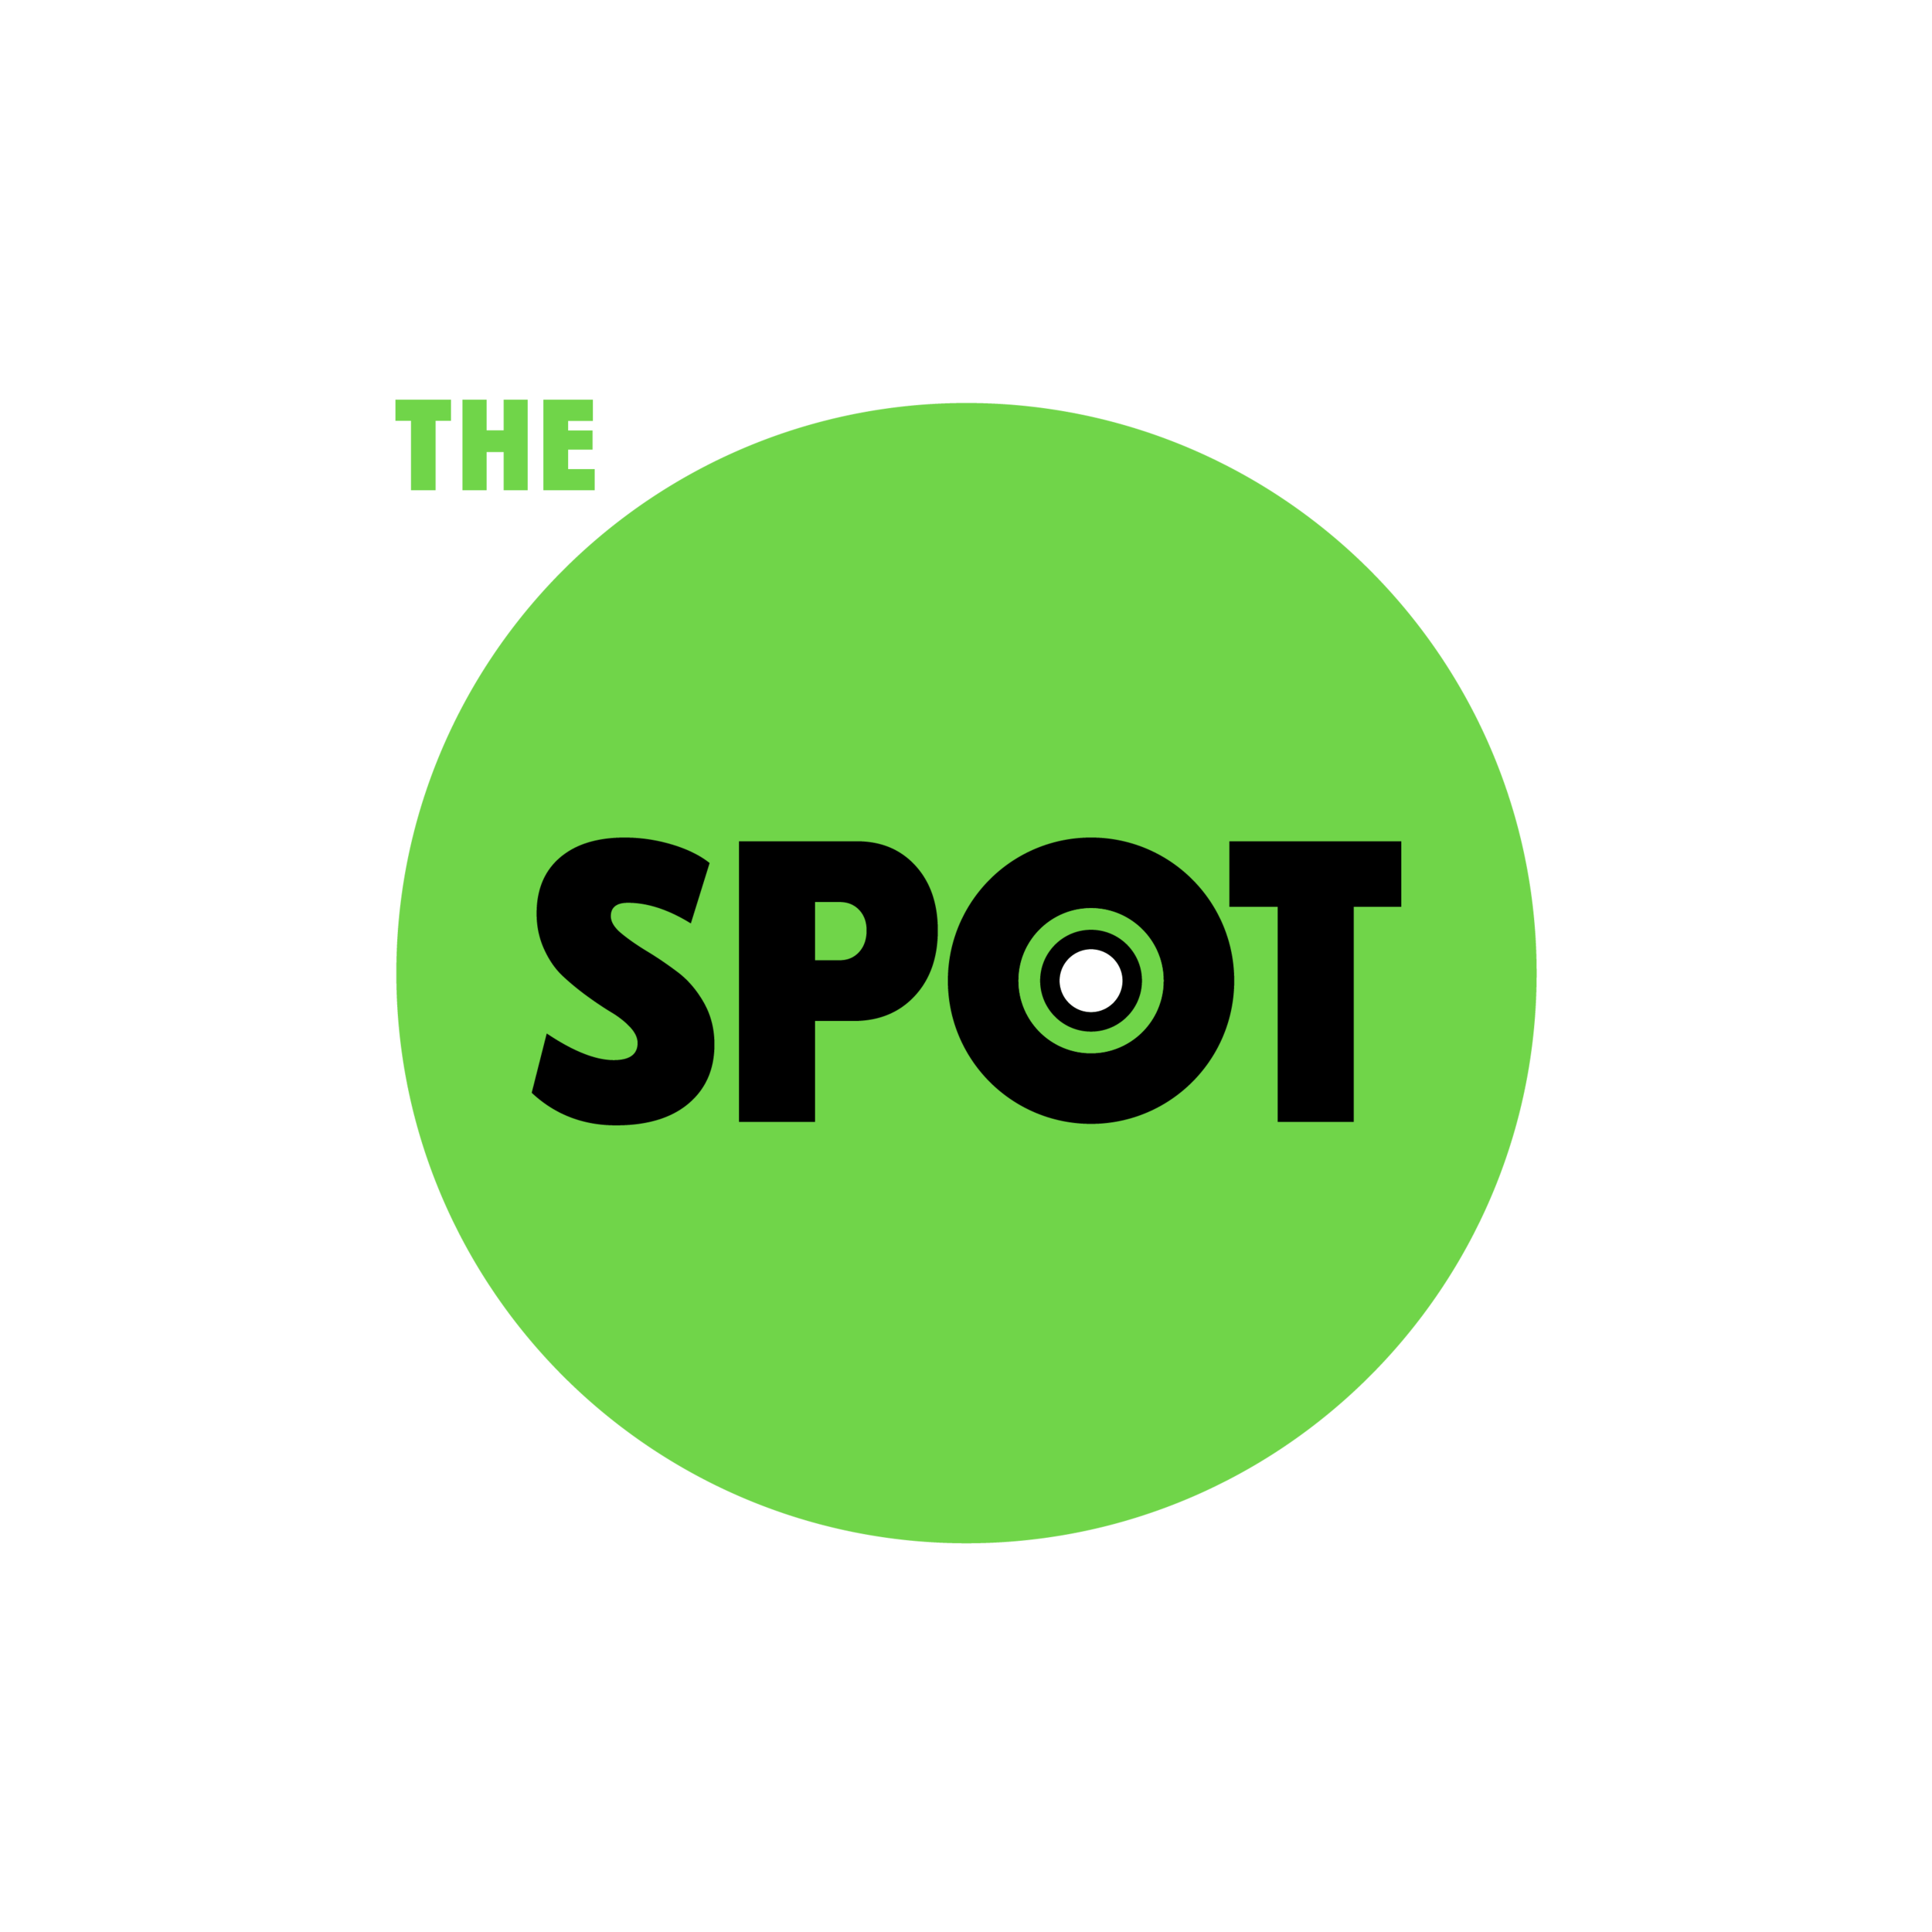 TheSpot-SecondaryLogo-01.png